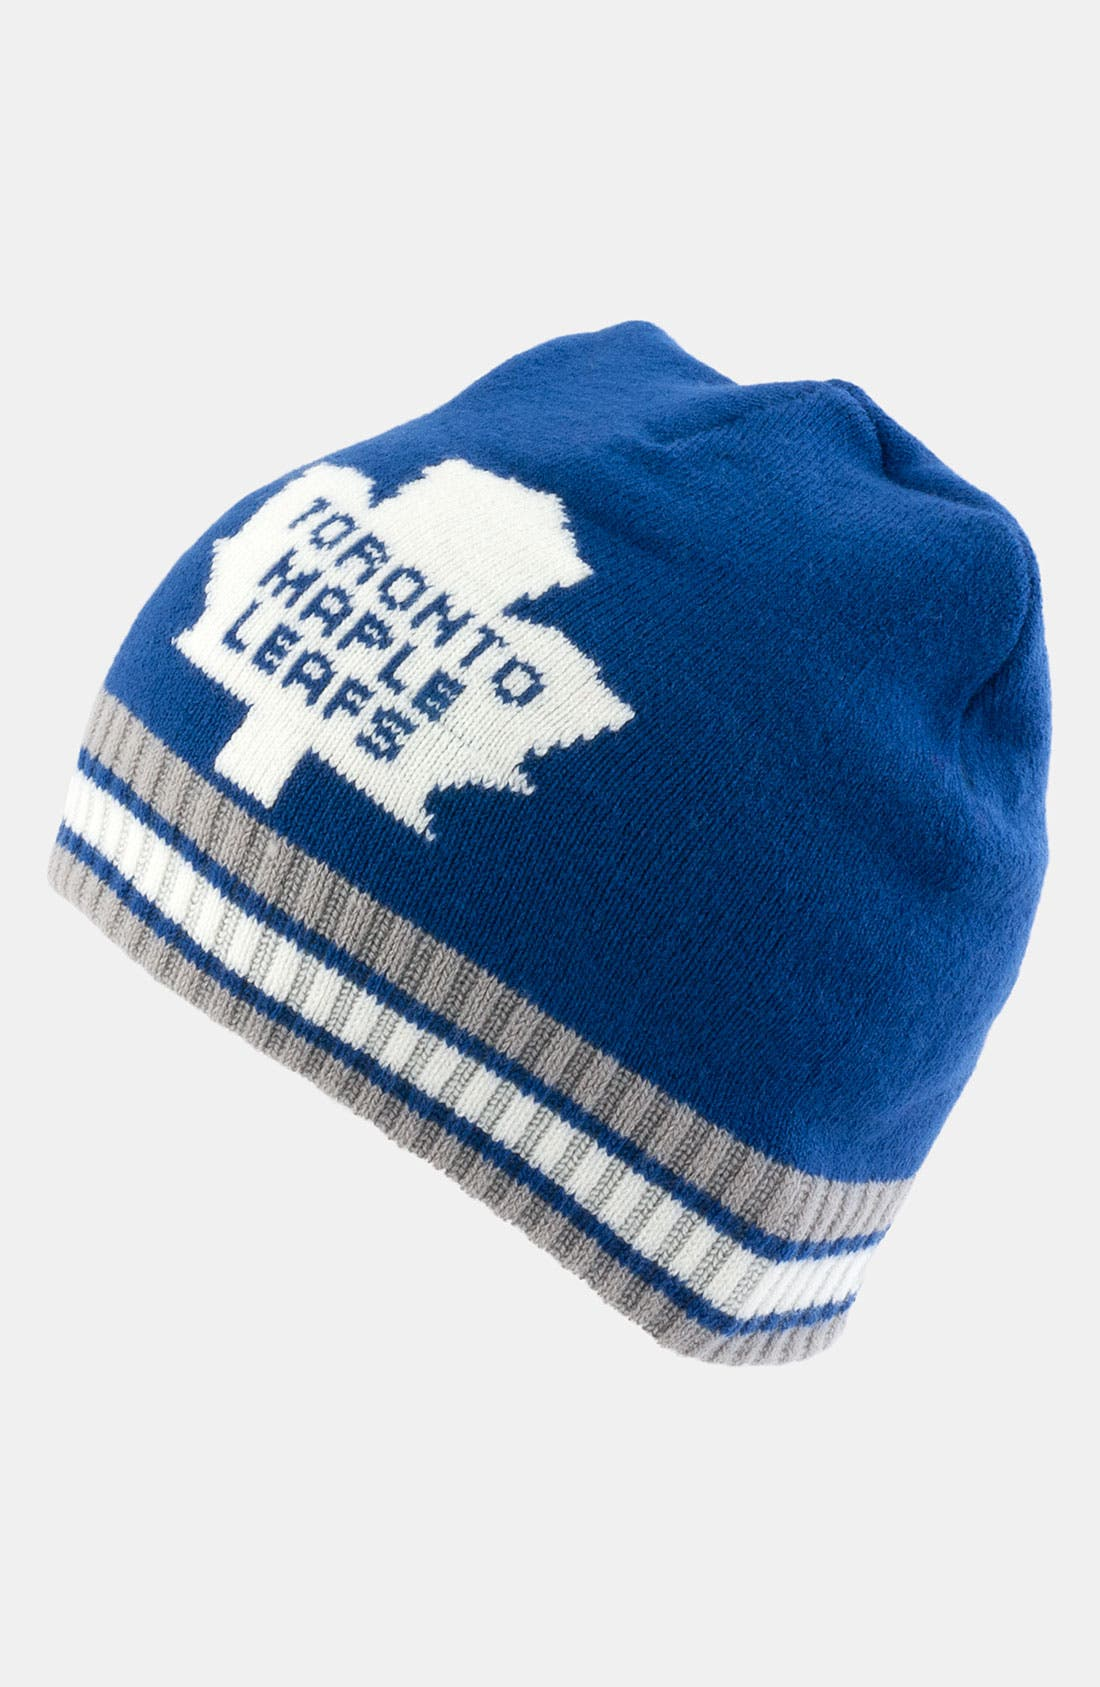 Alternate Image 1 Selected - American Needle 'Toronto Maple Leafs - Ring Wing' Knit Hat